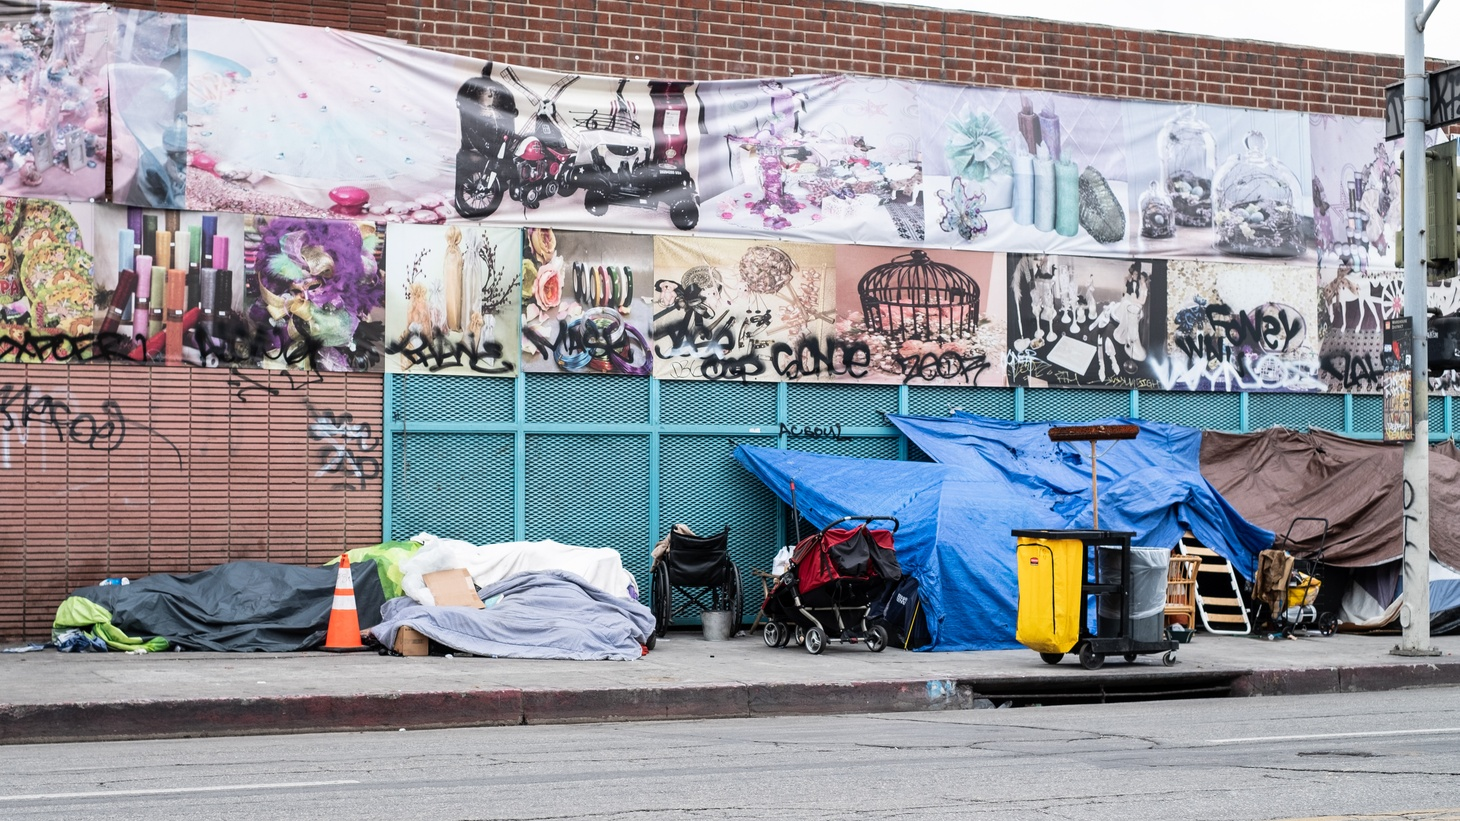 A homeless camp in LA's fashion district.